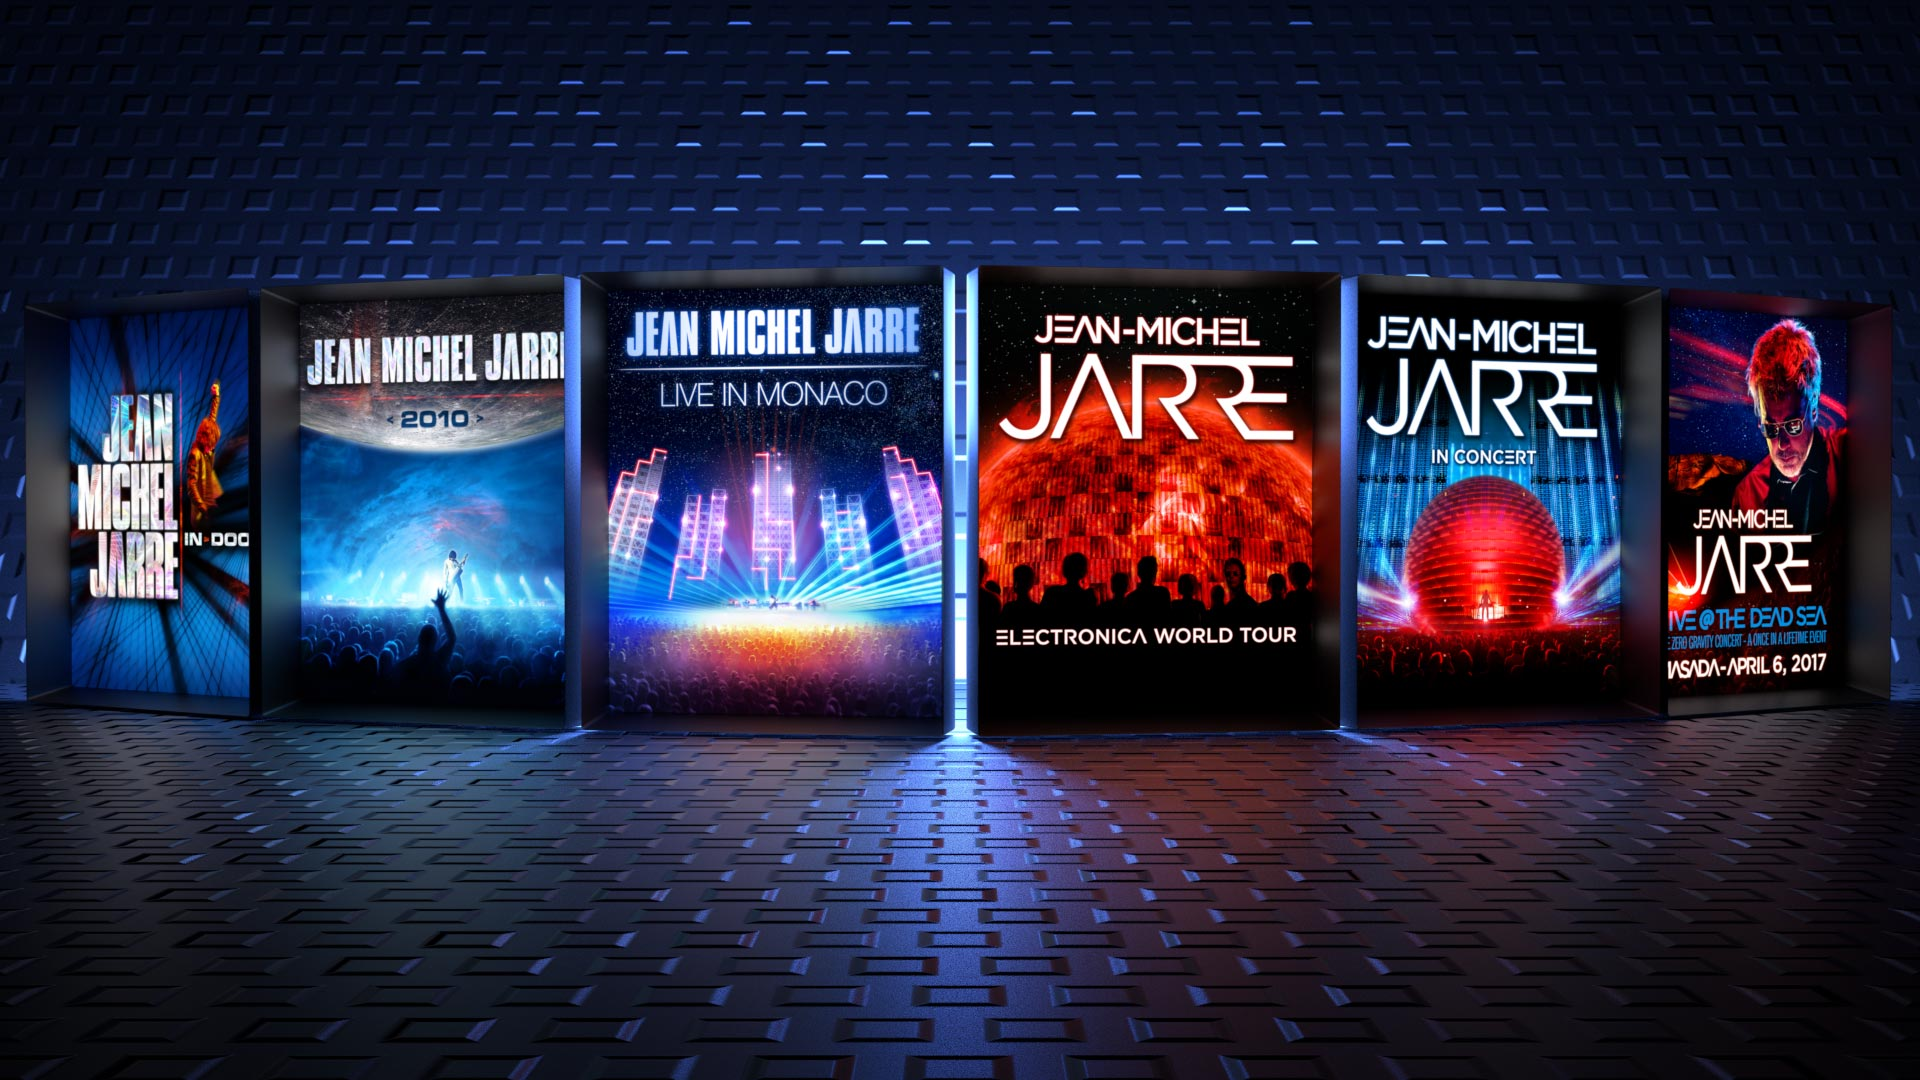 Graphic Design of Jean-Michel Jarre's concerts and tour posters, for worldwide use: In-Doors, 2010, Electronica Tour. Also some special Events: Monaco, Live @ the Dead Sea.